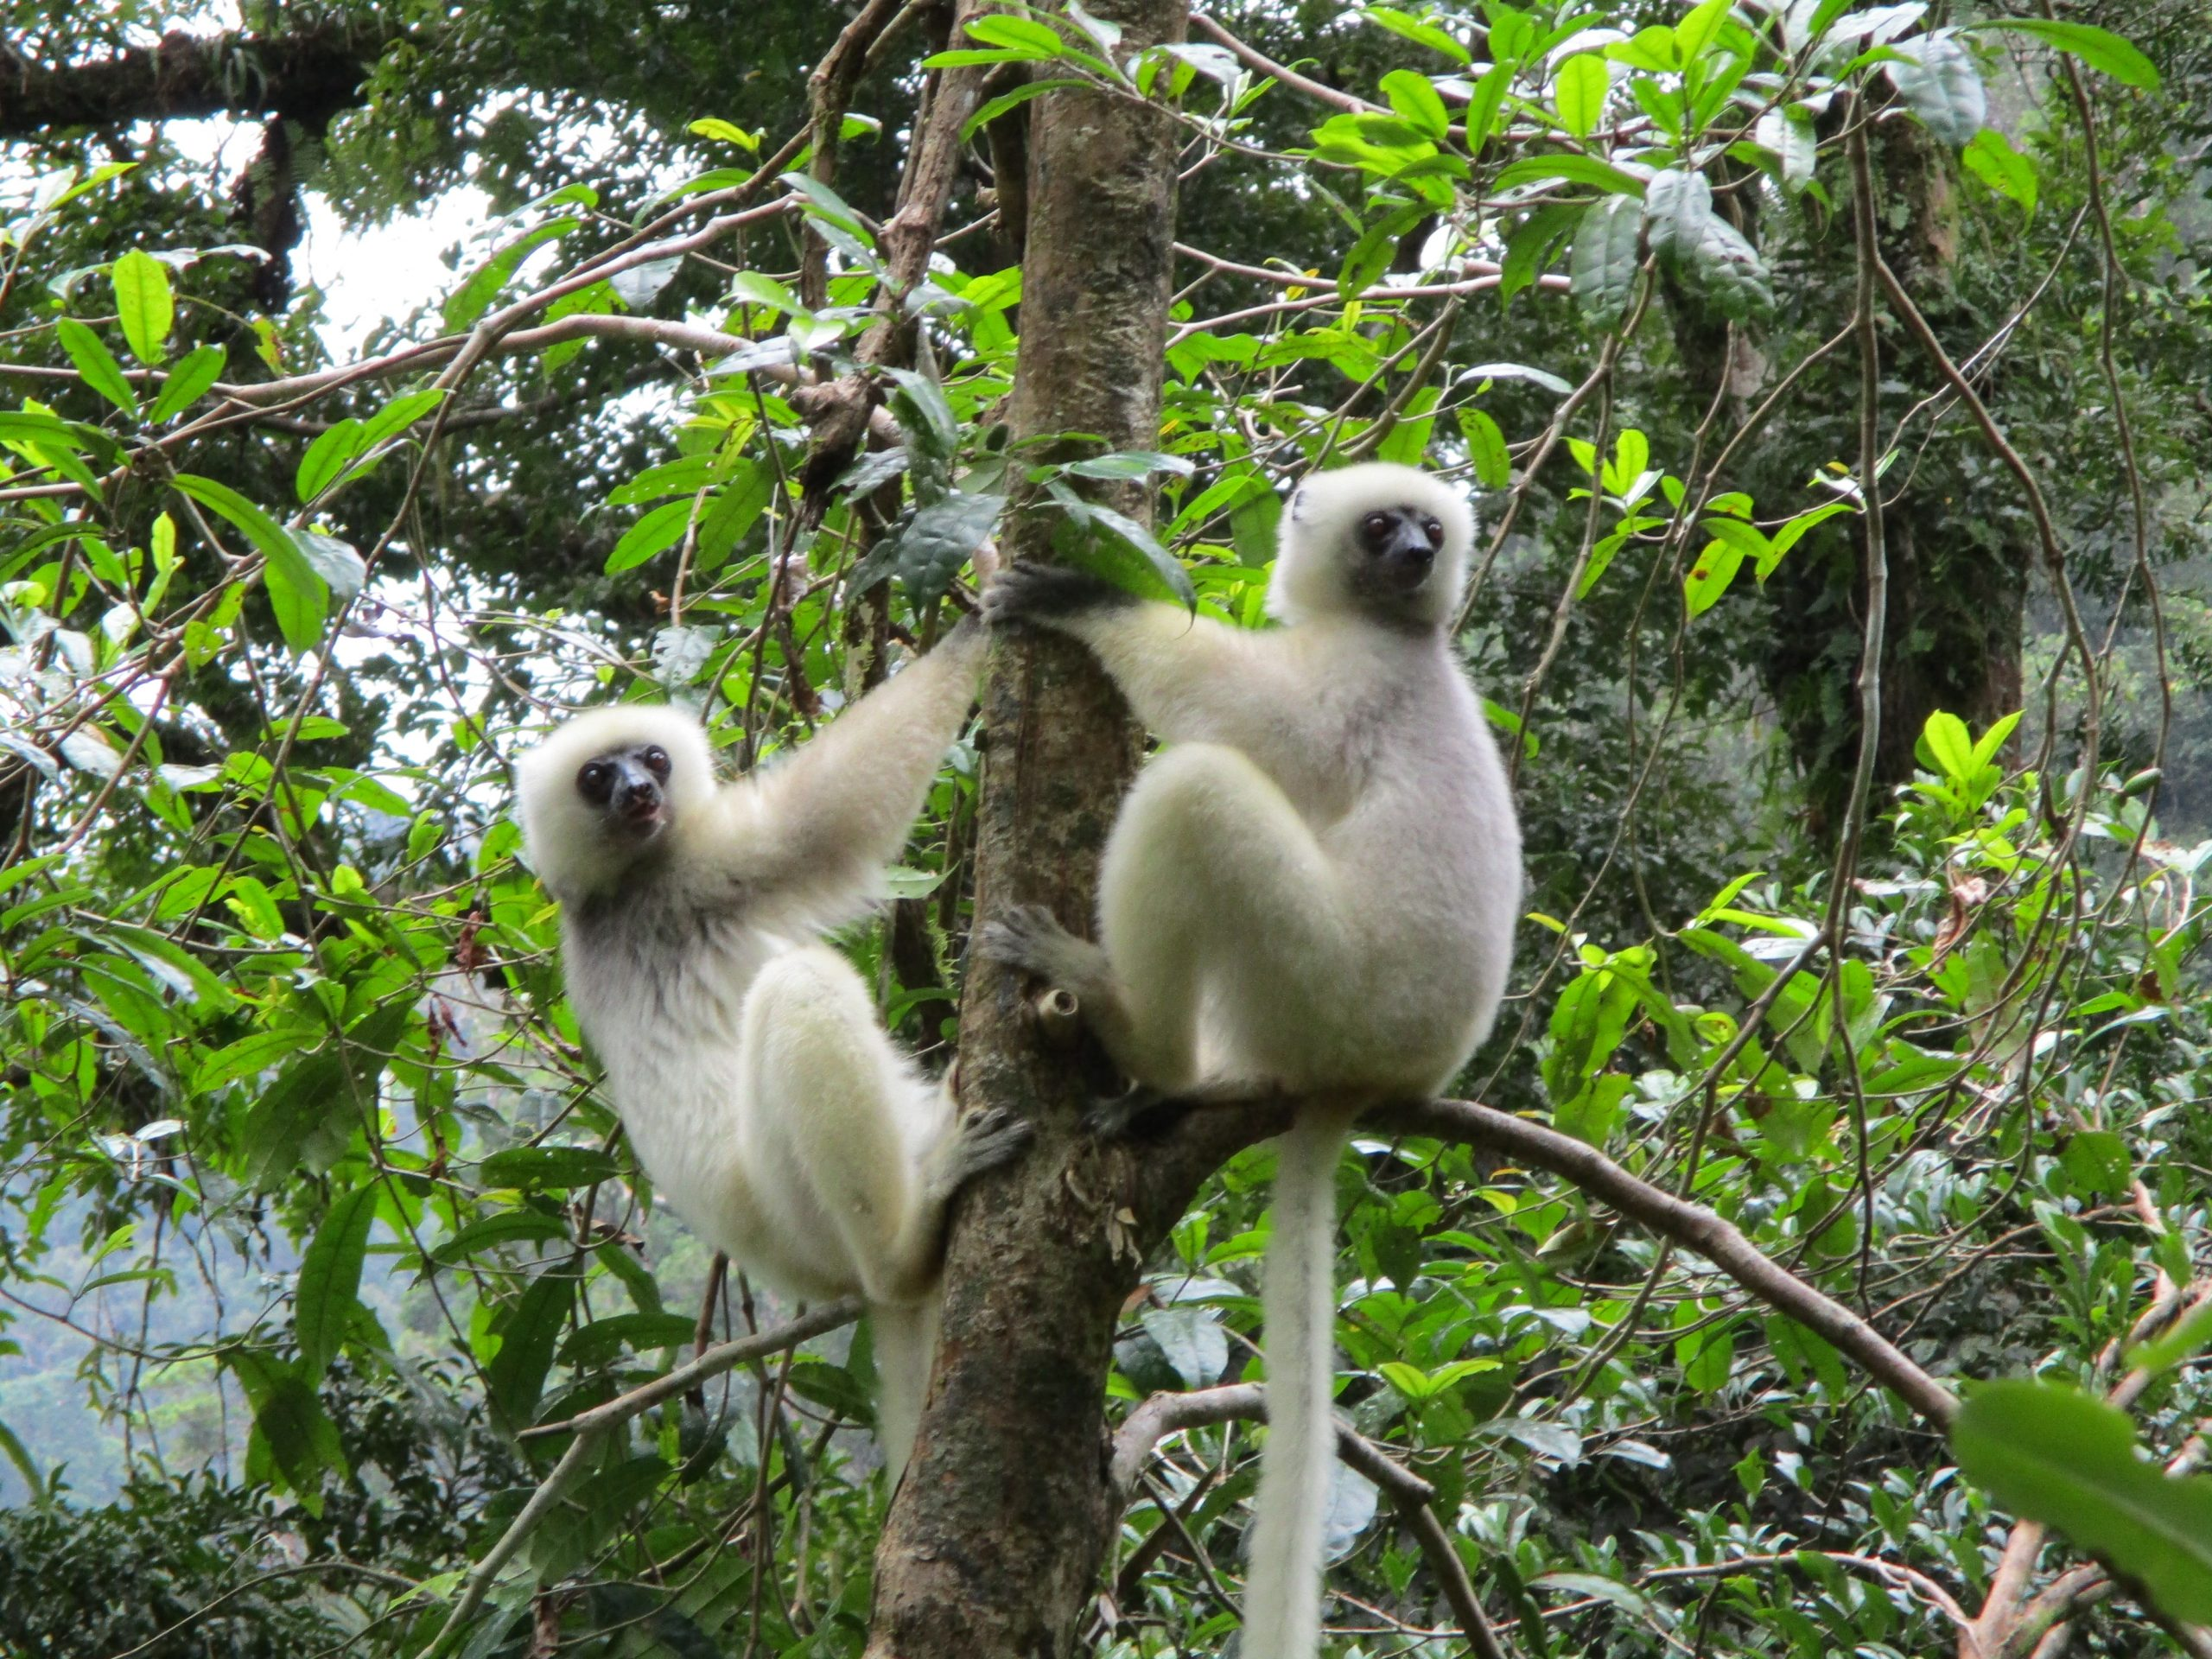 Two Silky Sifaka lemurs in a tree